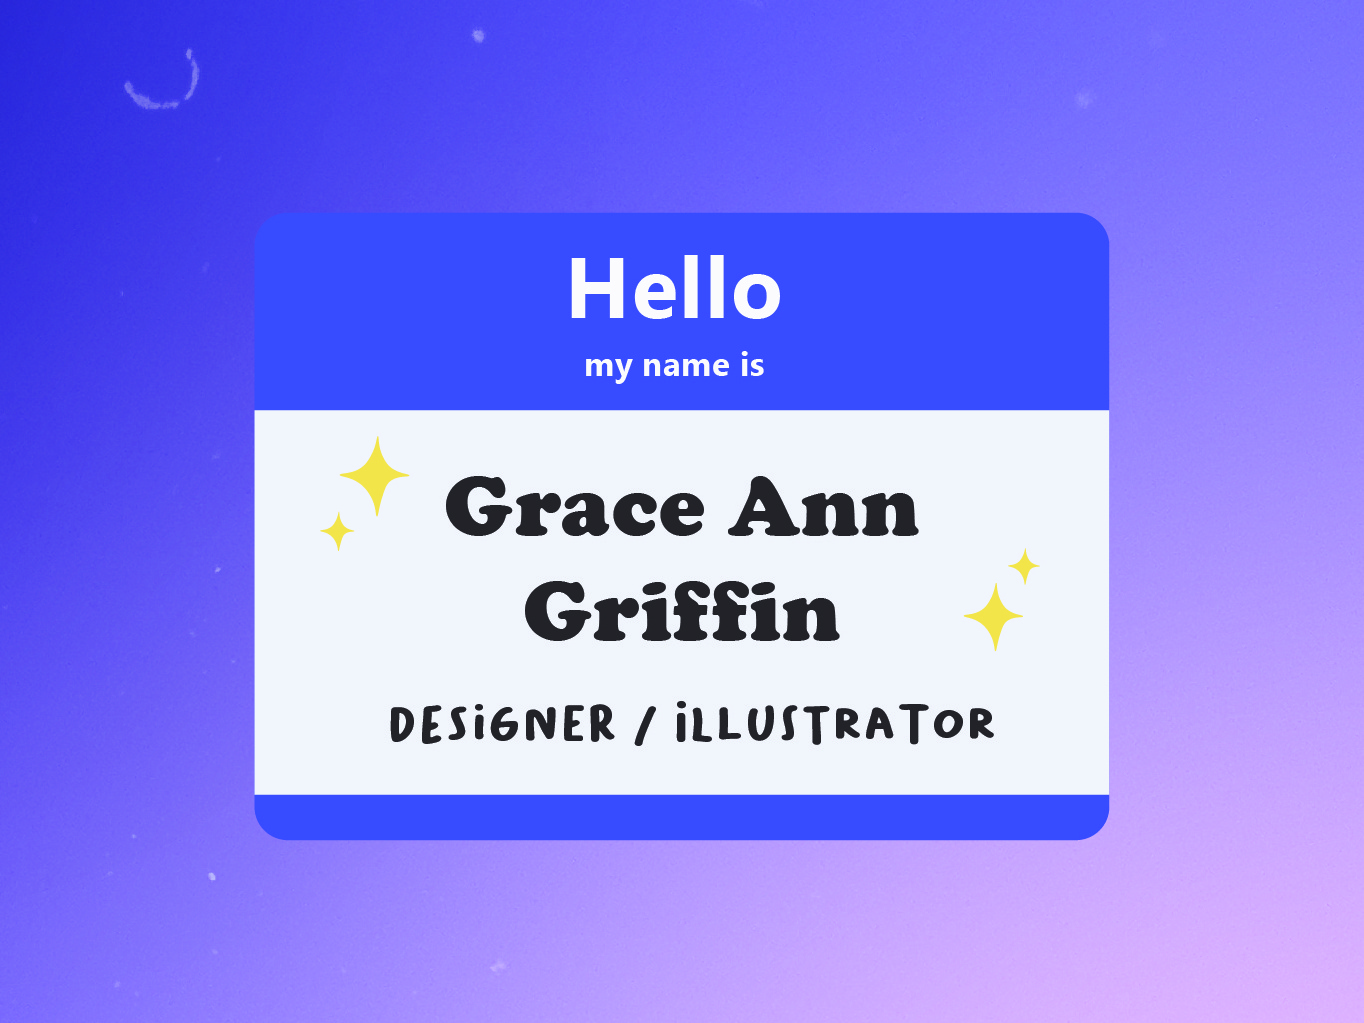 name tag by Grace Ann Griffin on Dribbble